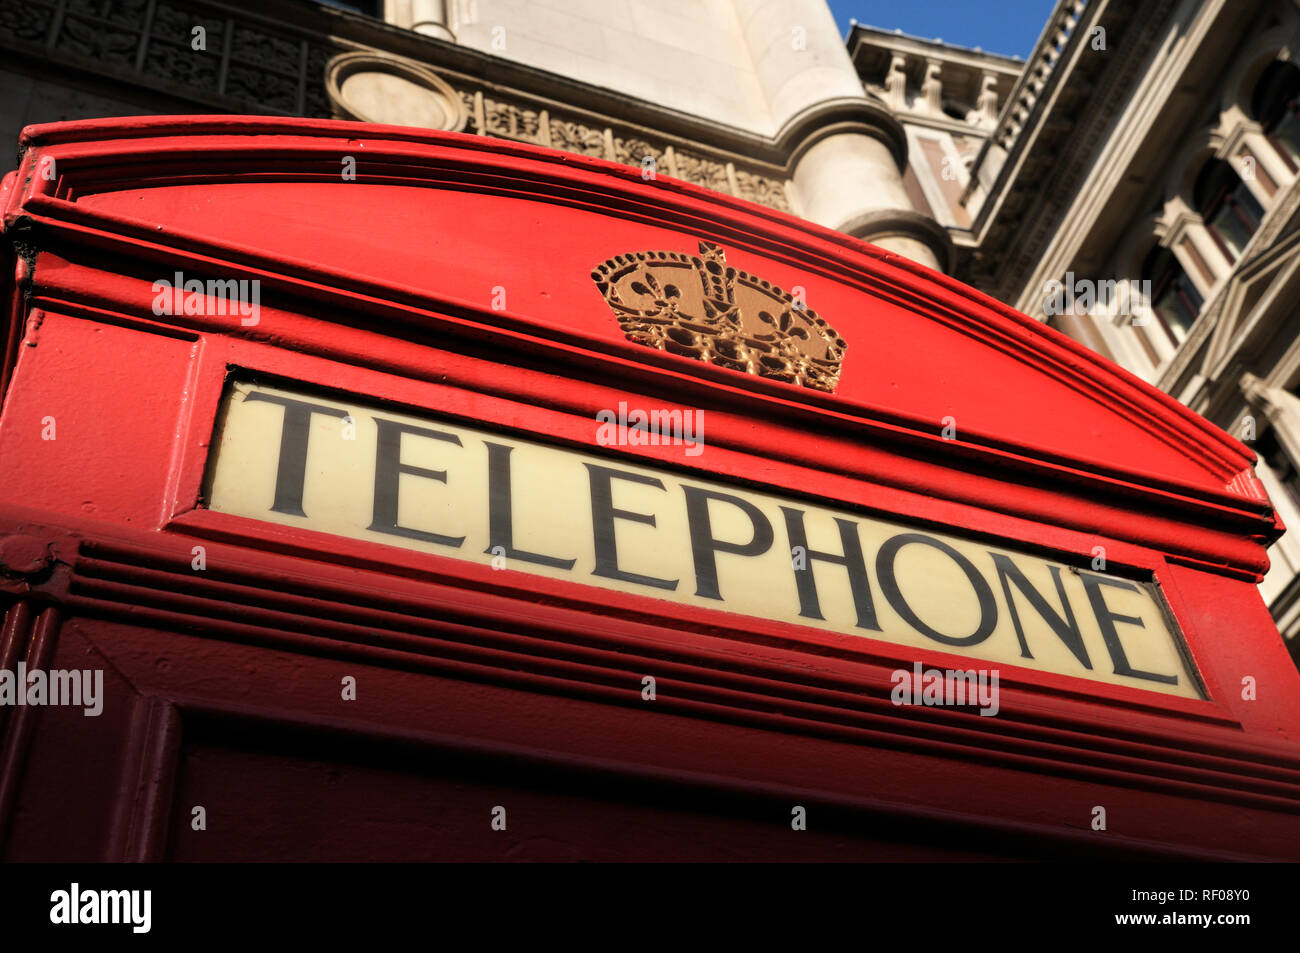 Red telephone booth (iconic K2 kiosk designed by Sir Giles Gilbert Scott), London, England, UK - Stock Image